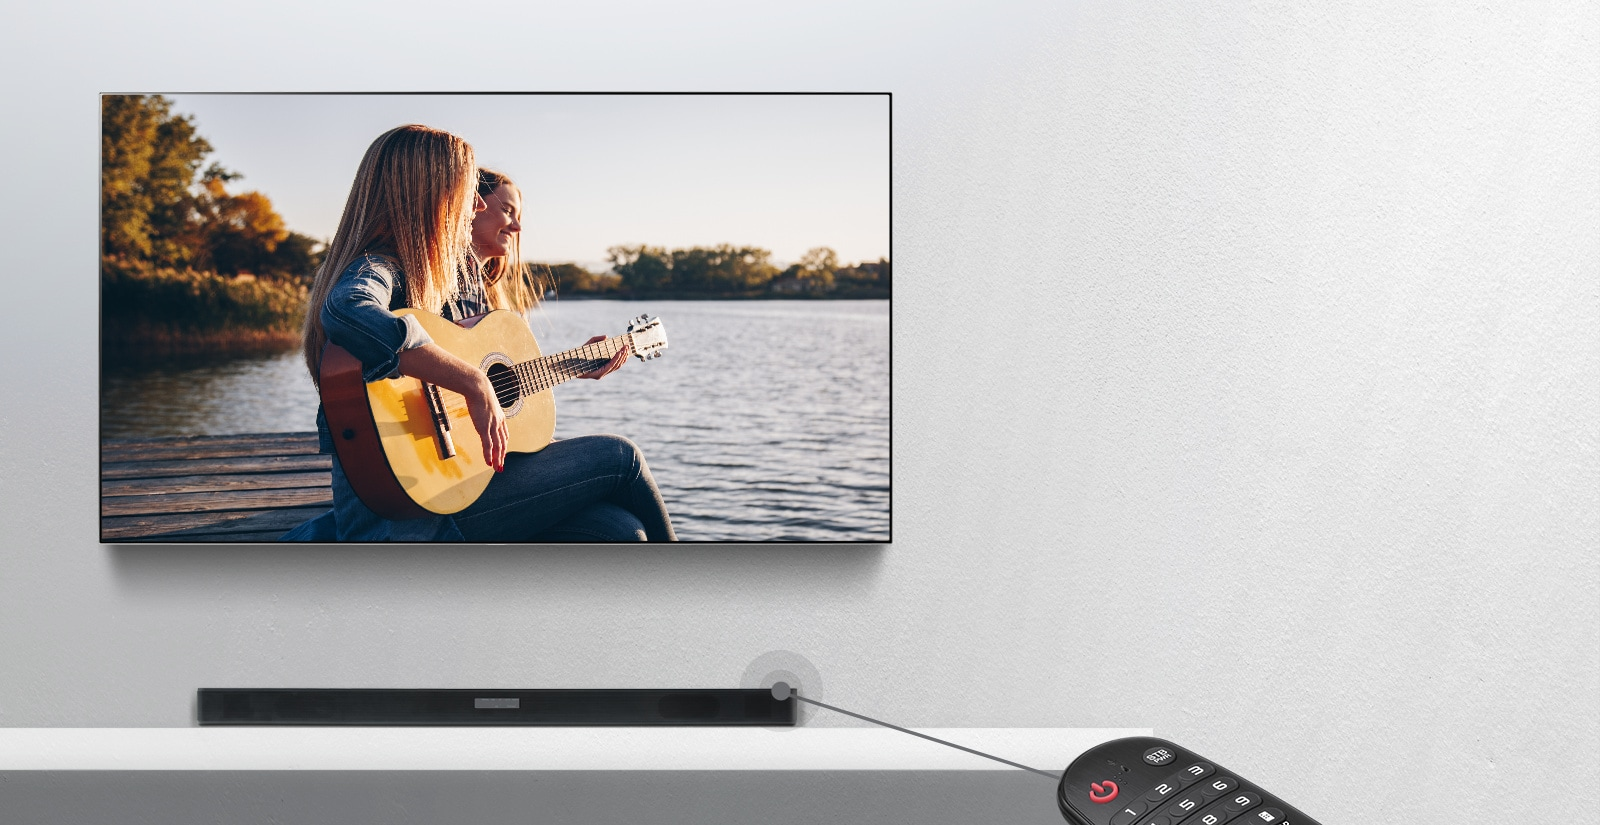 Звуковая панель Soundbar (Саундбар) LG SK6F 2.1 (черный) 360W - фото 04_SK5_Control_with_your_TV_Remote_Desktop